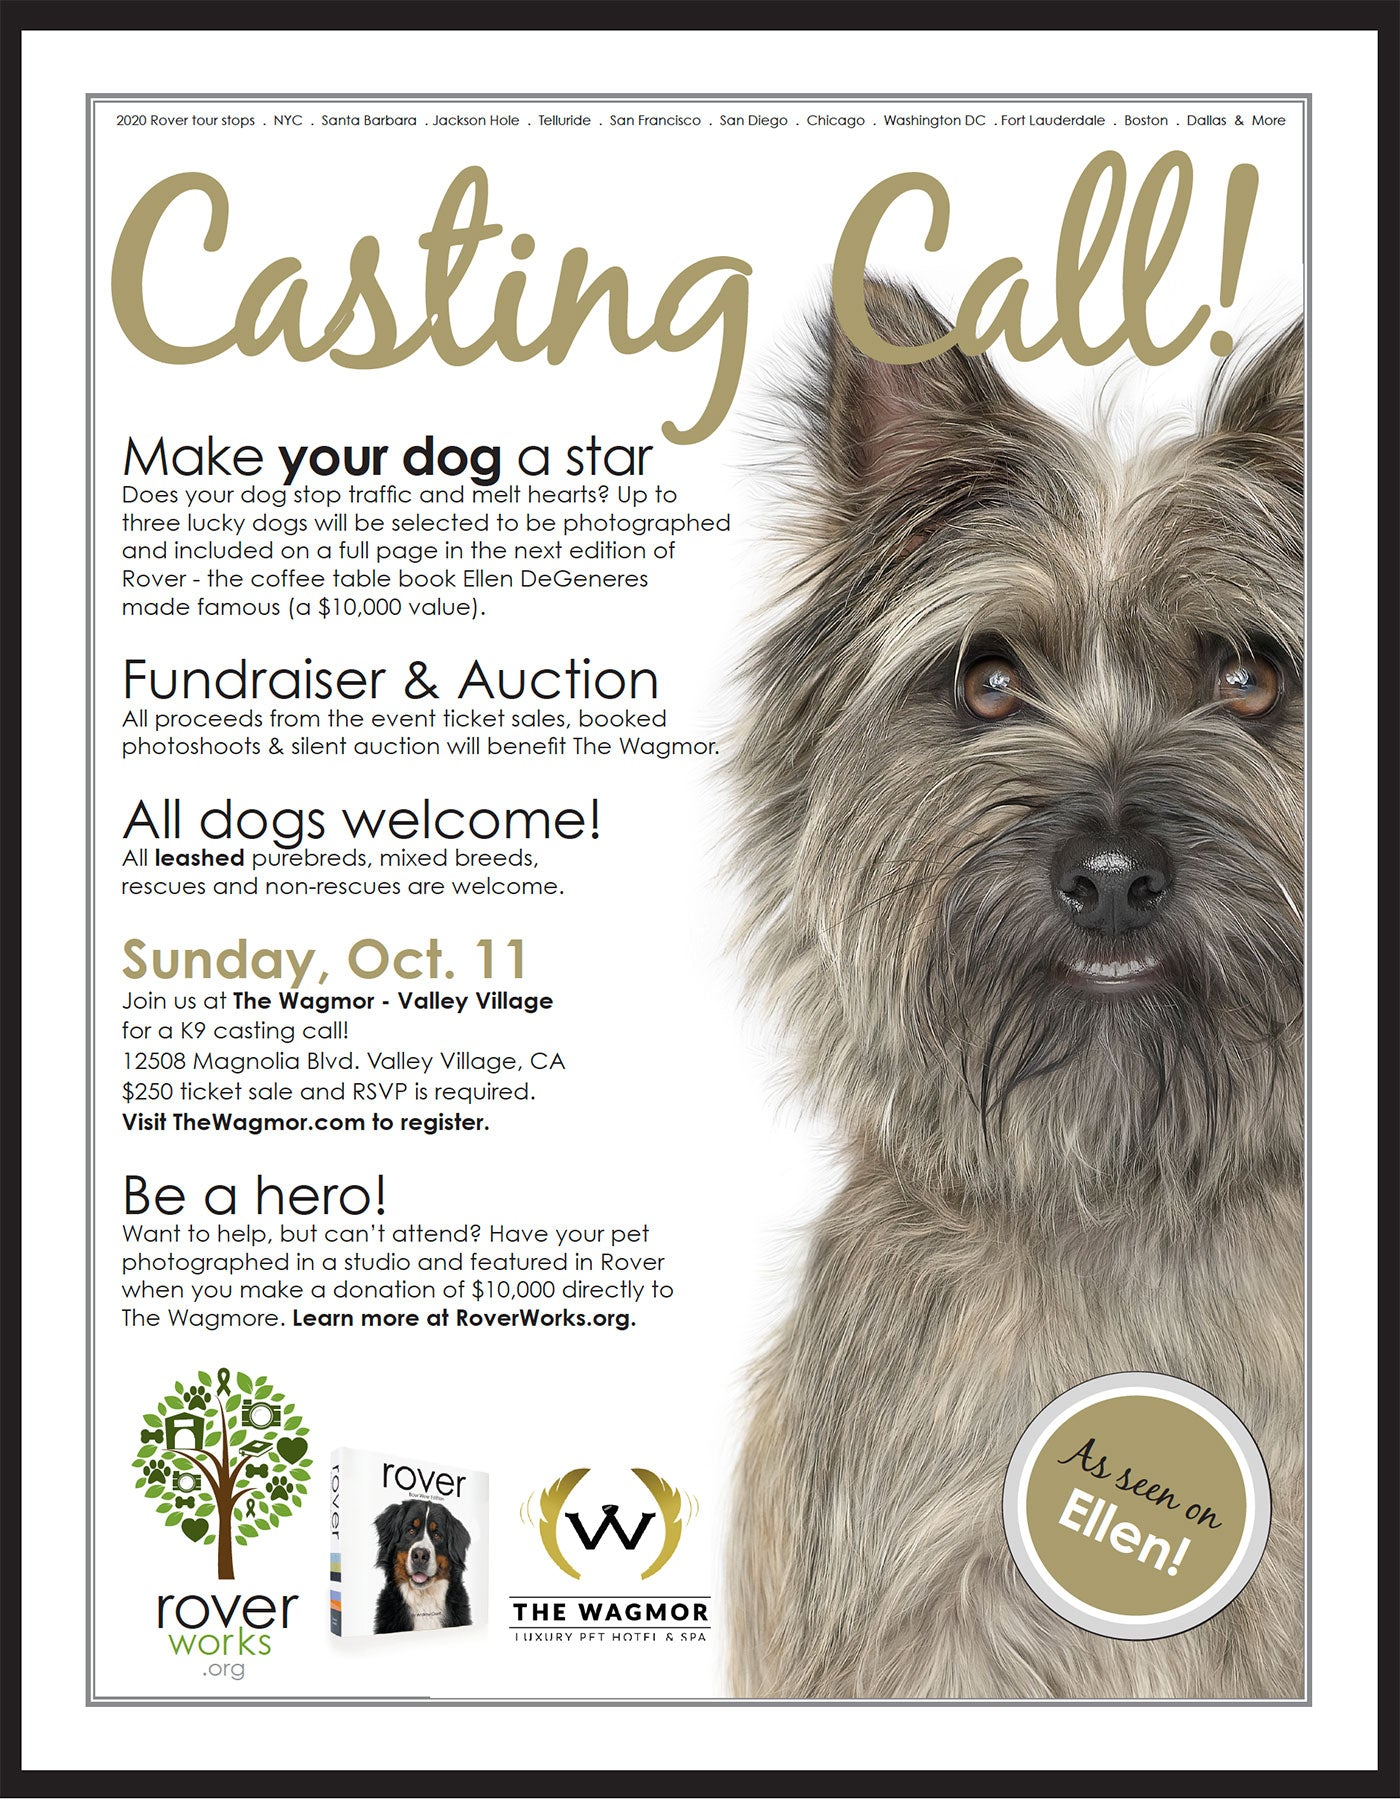 Rover + The Wagmor K9 Casting Call